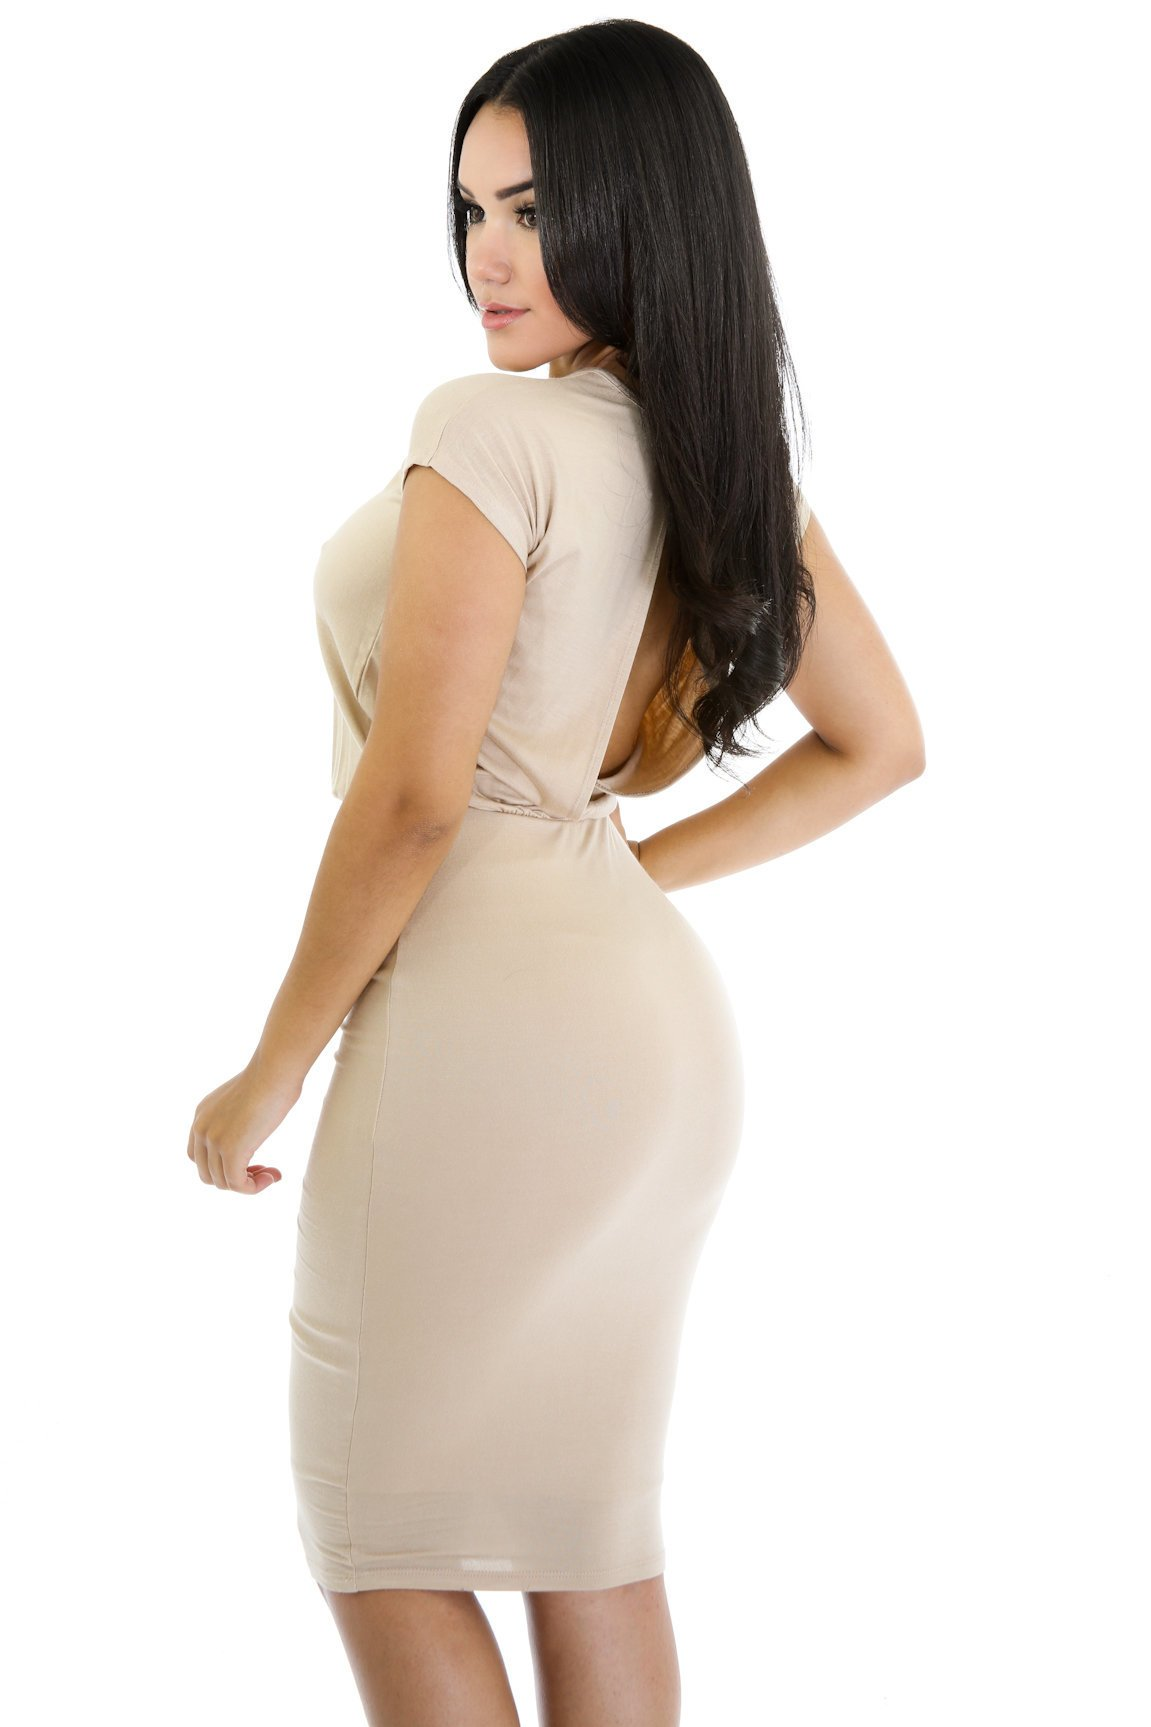 Beauty Open Back dress